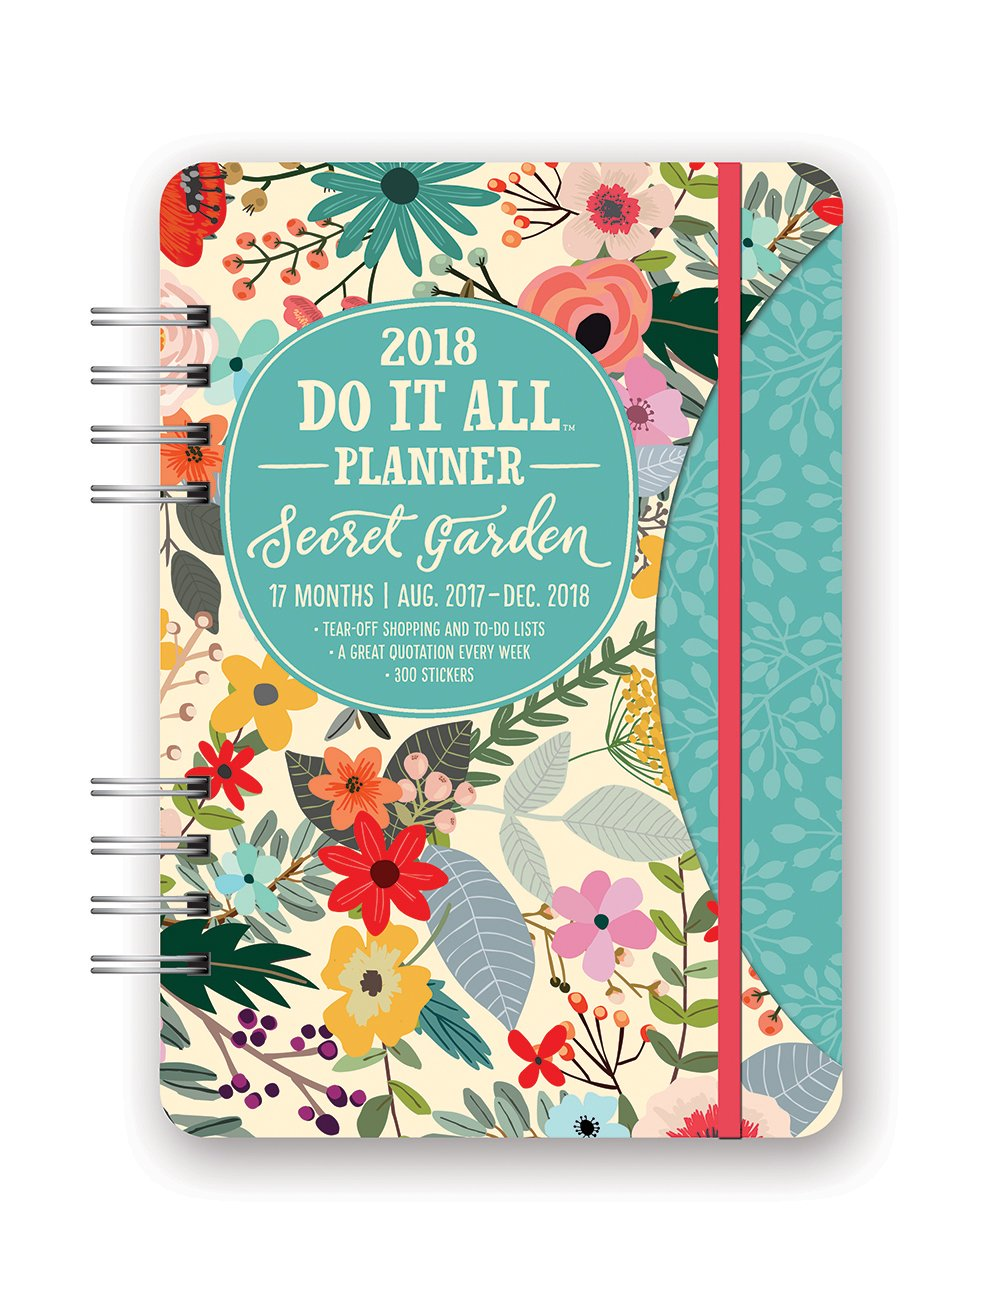 Do It All Planner (Secret Garden Edition)